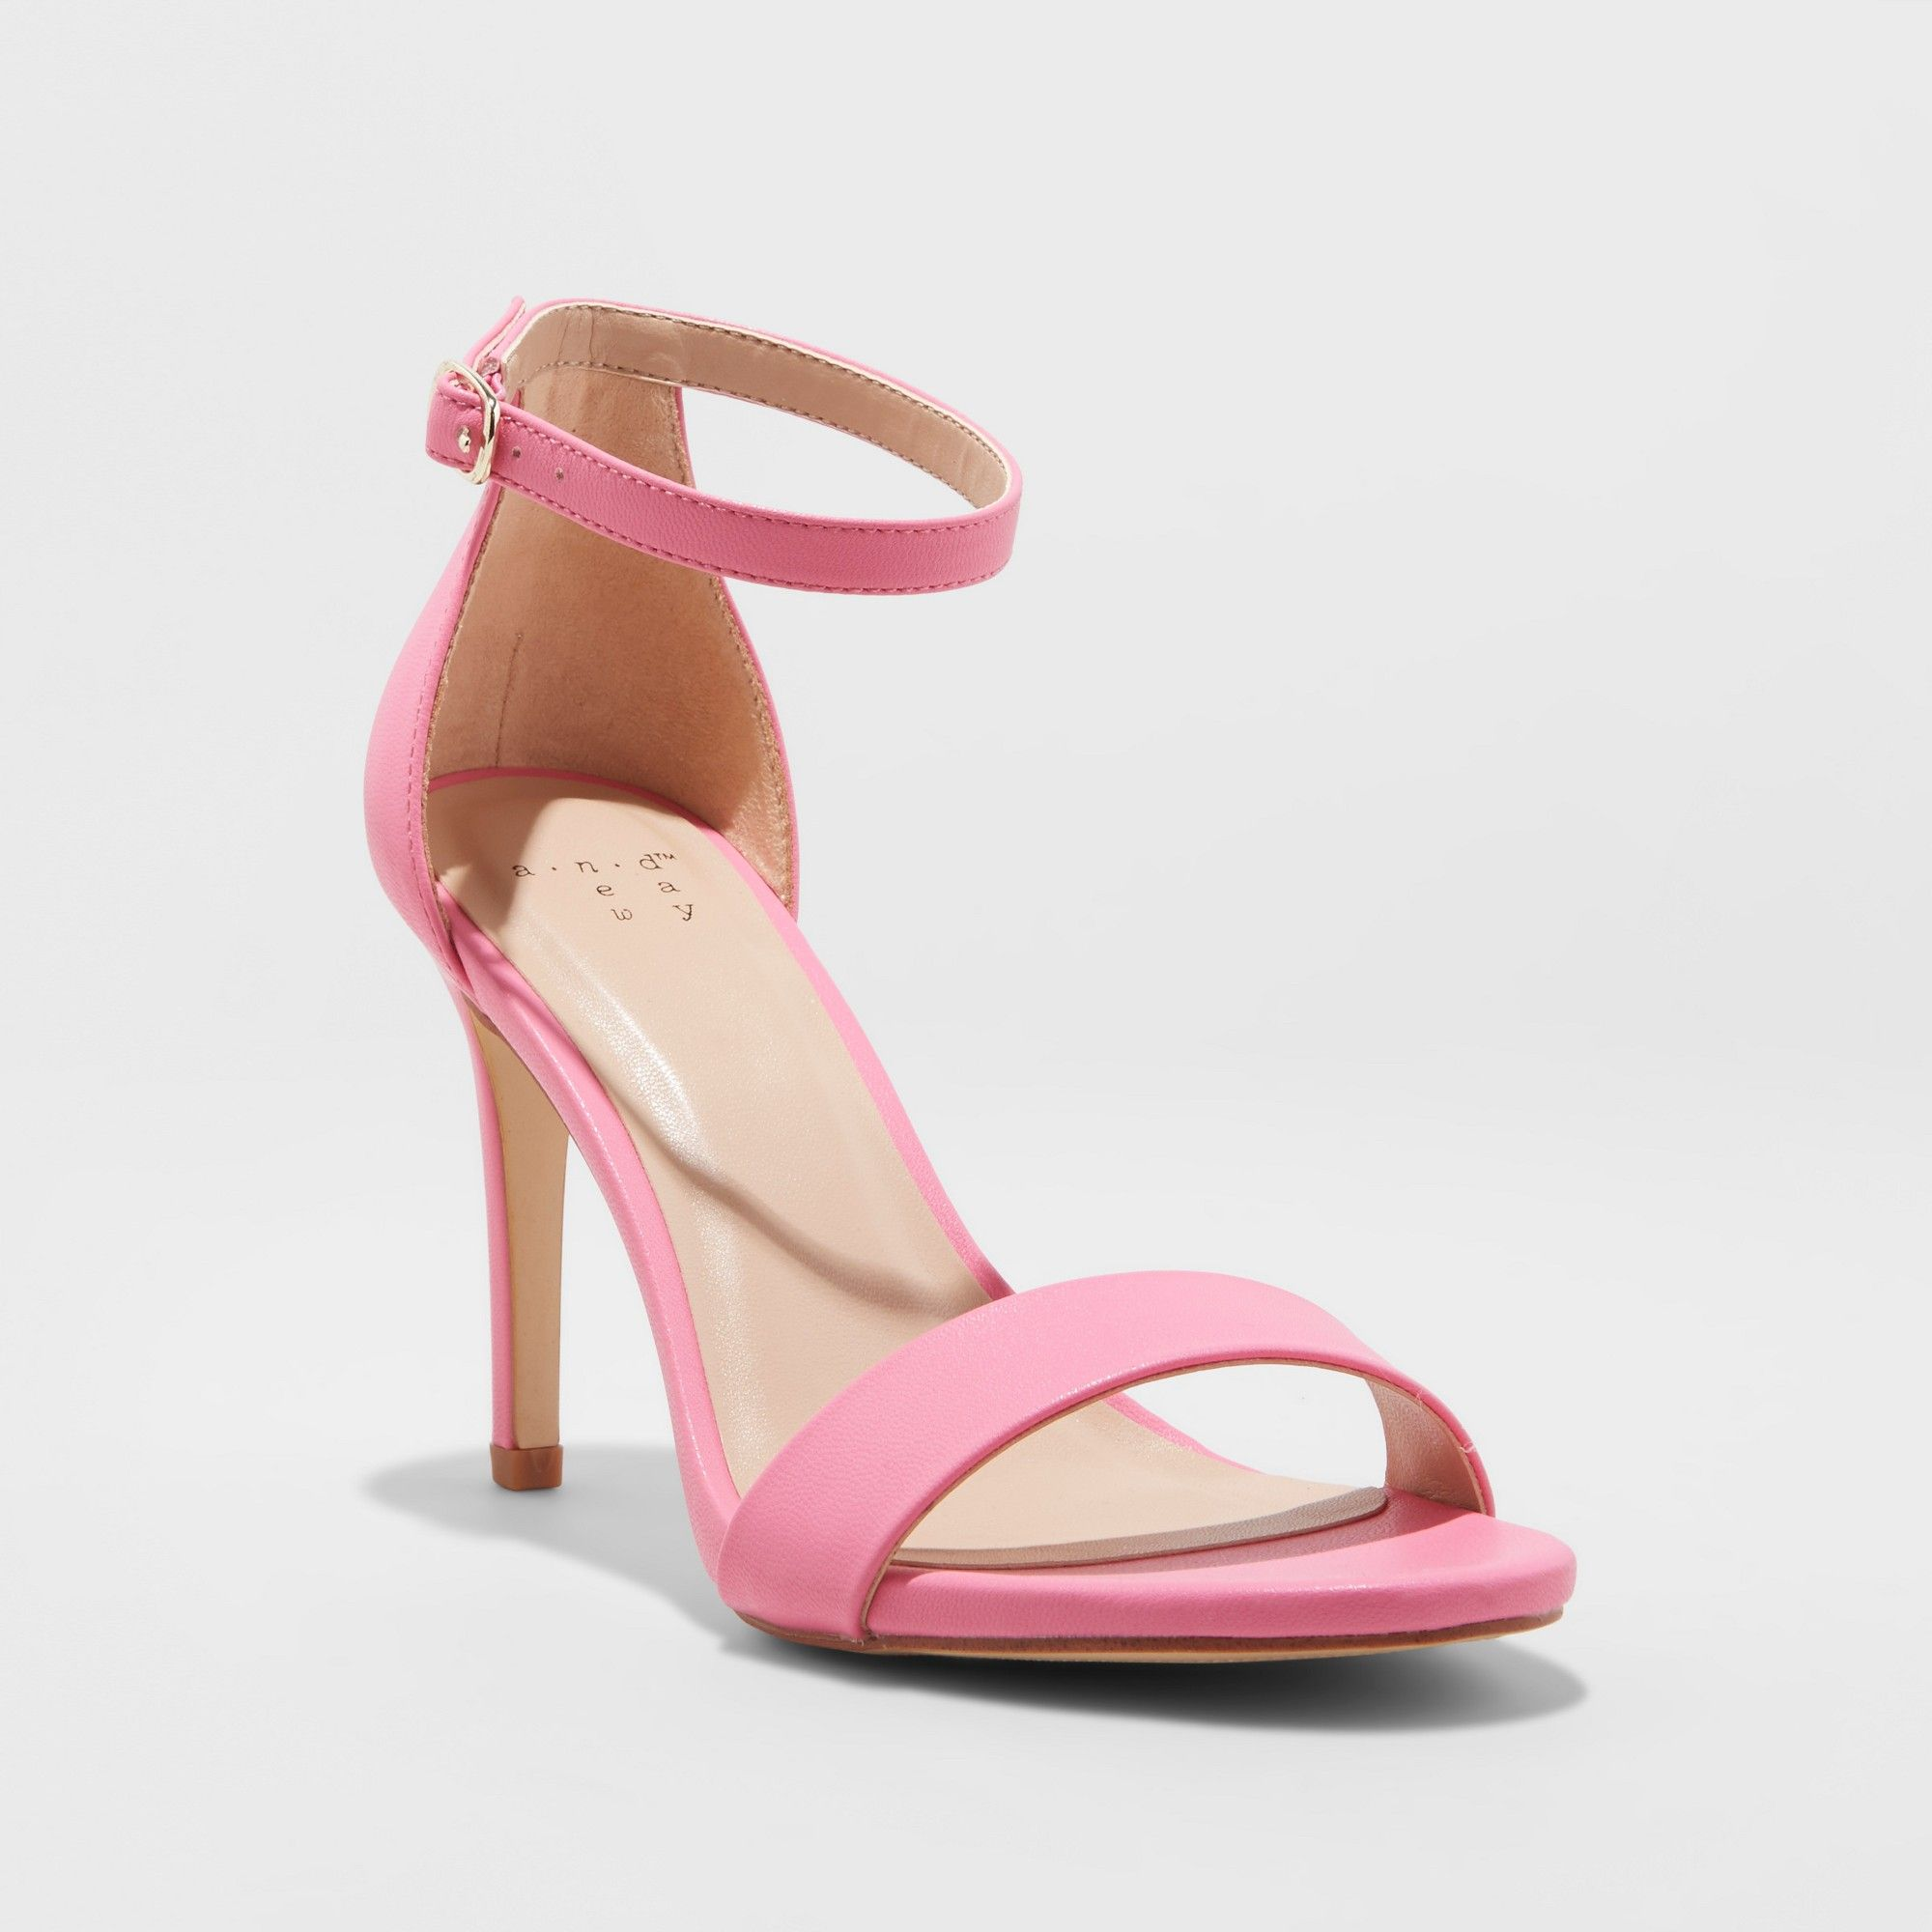 a1783a09180 Women s Myla Wide Width Stiletto Heeled Pump Sandal - A New Day Pink 8.5W